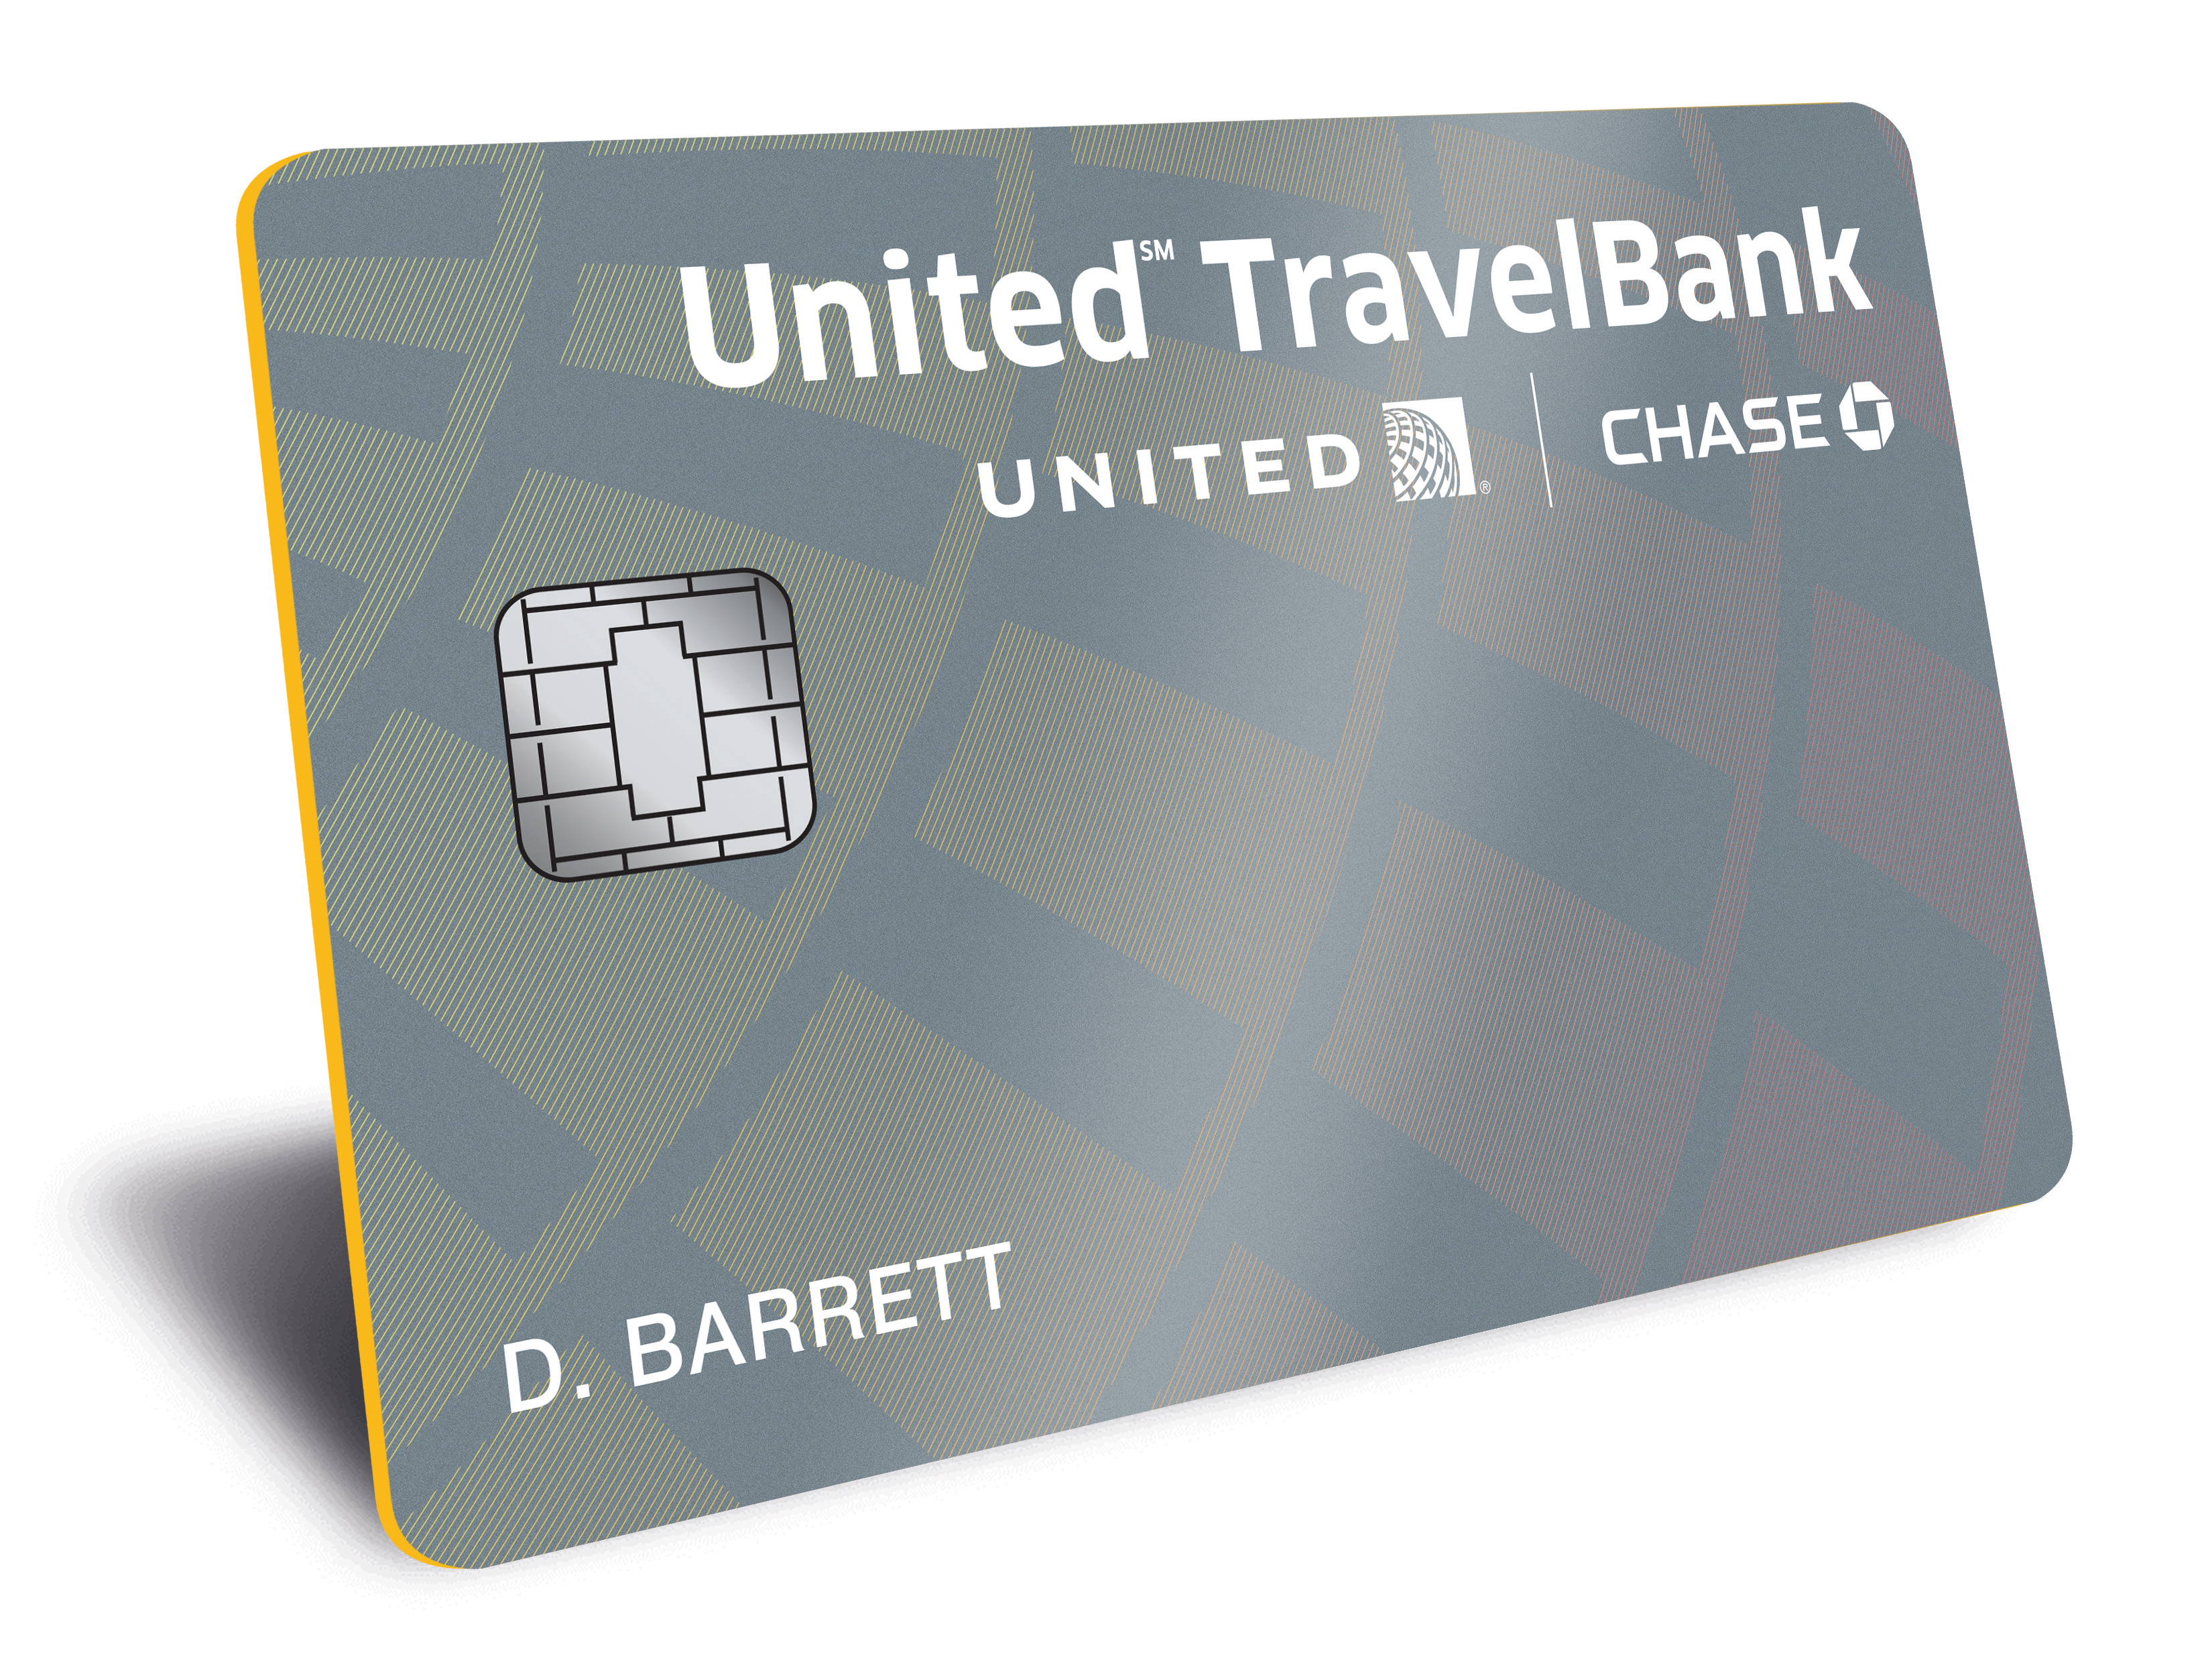 United airlines and chase introduce the united travelbank card a no chase card services maria martinez 212 270 5692 mariartinezchase reheart Gallery